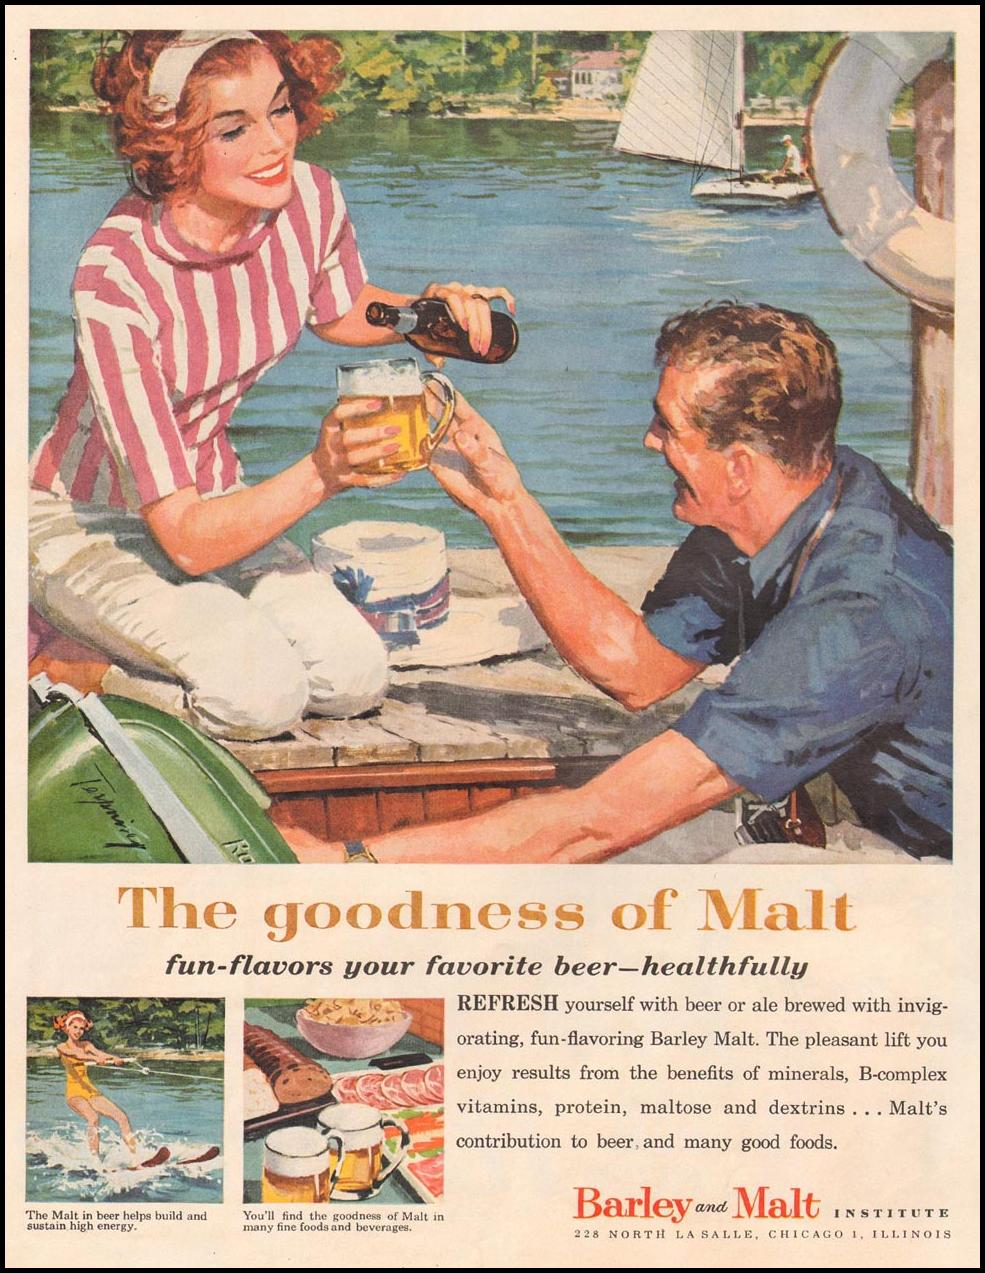 MALT PRODUCTS LIFE 08/10/1959